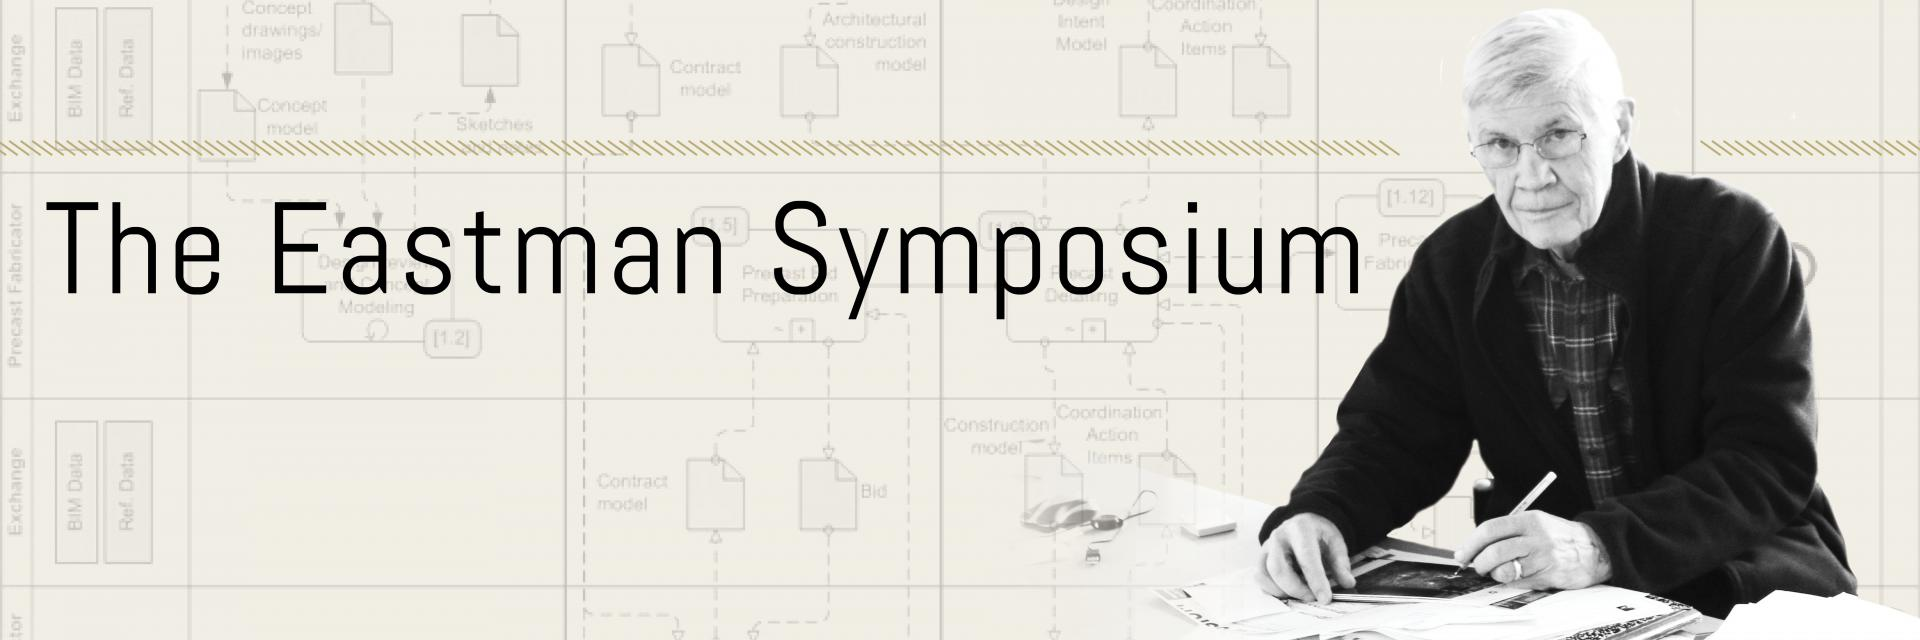 image of Prof. Eastman overlaid with the title of symposium and shown one of his diagram.